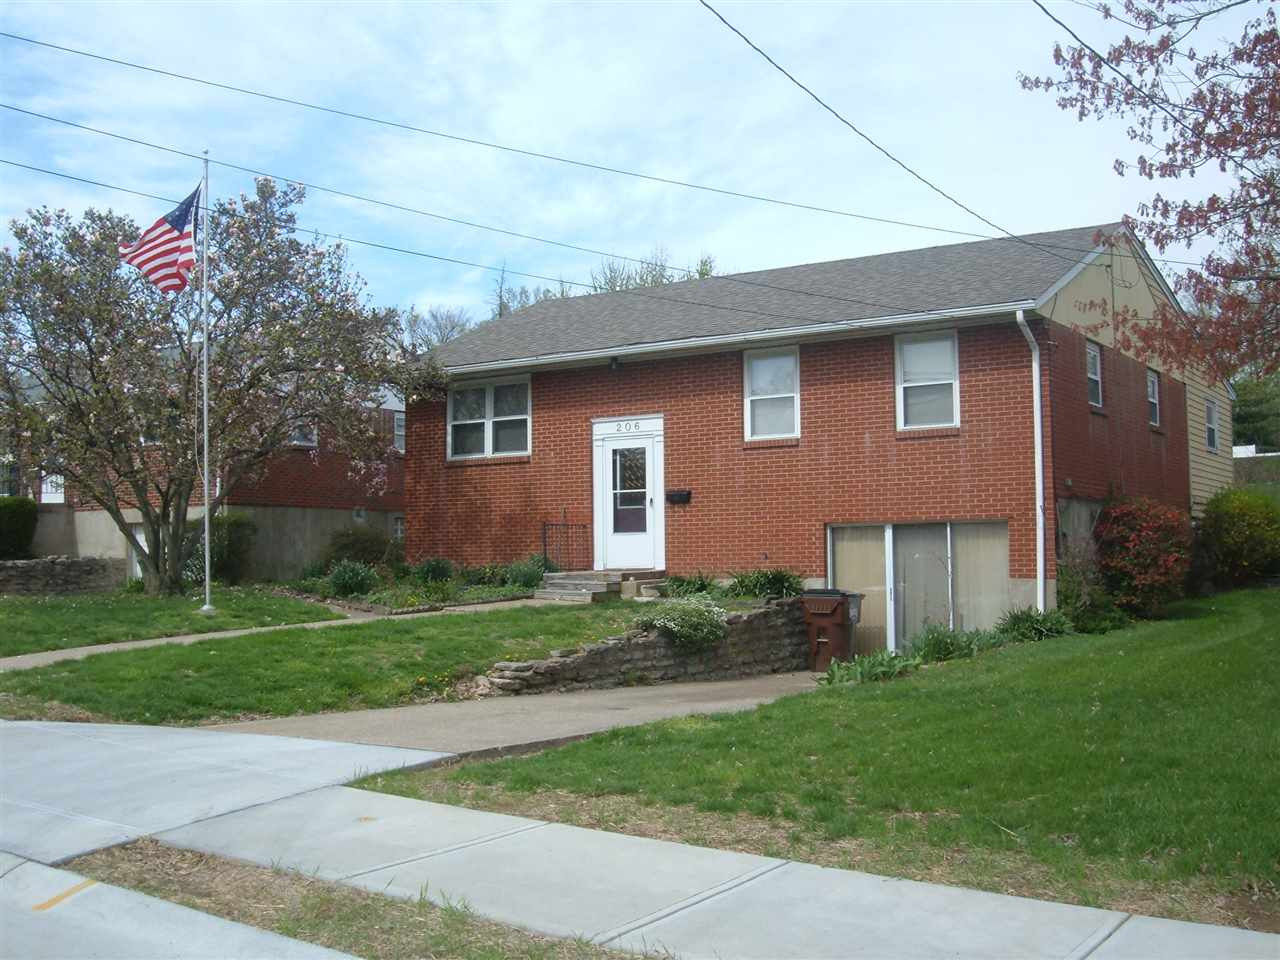 Photo 2 for 206 Caldwell Dr Elsmere, KY 41018